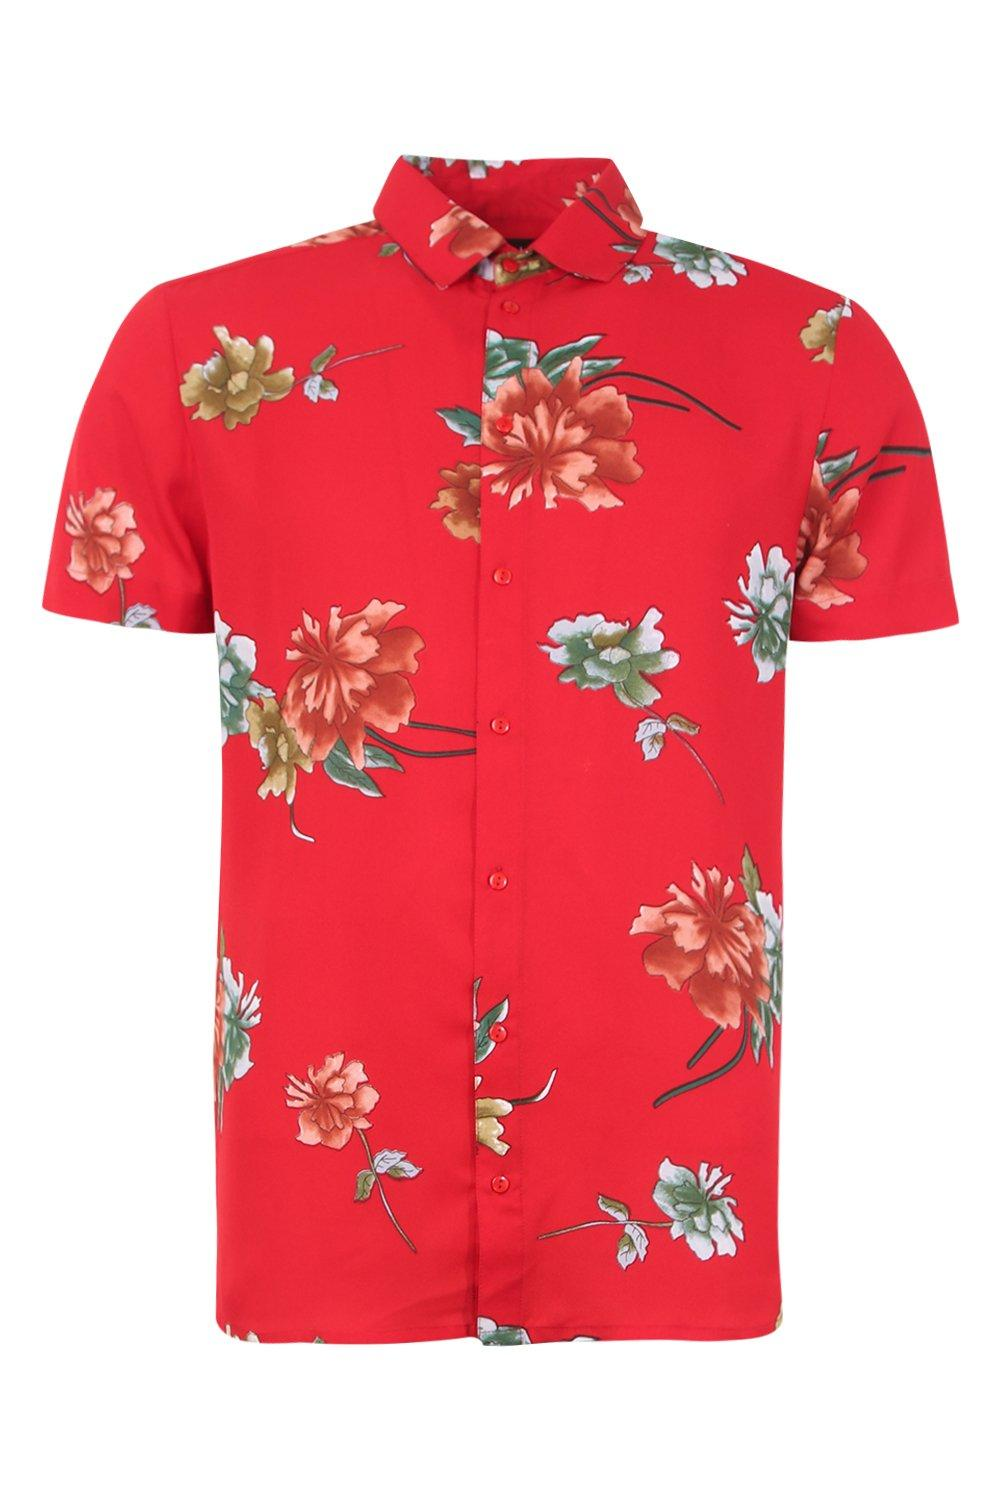 boohooMAN Red Floral Print Short Sleeve Shirt